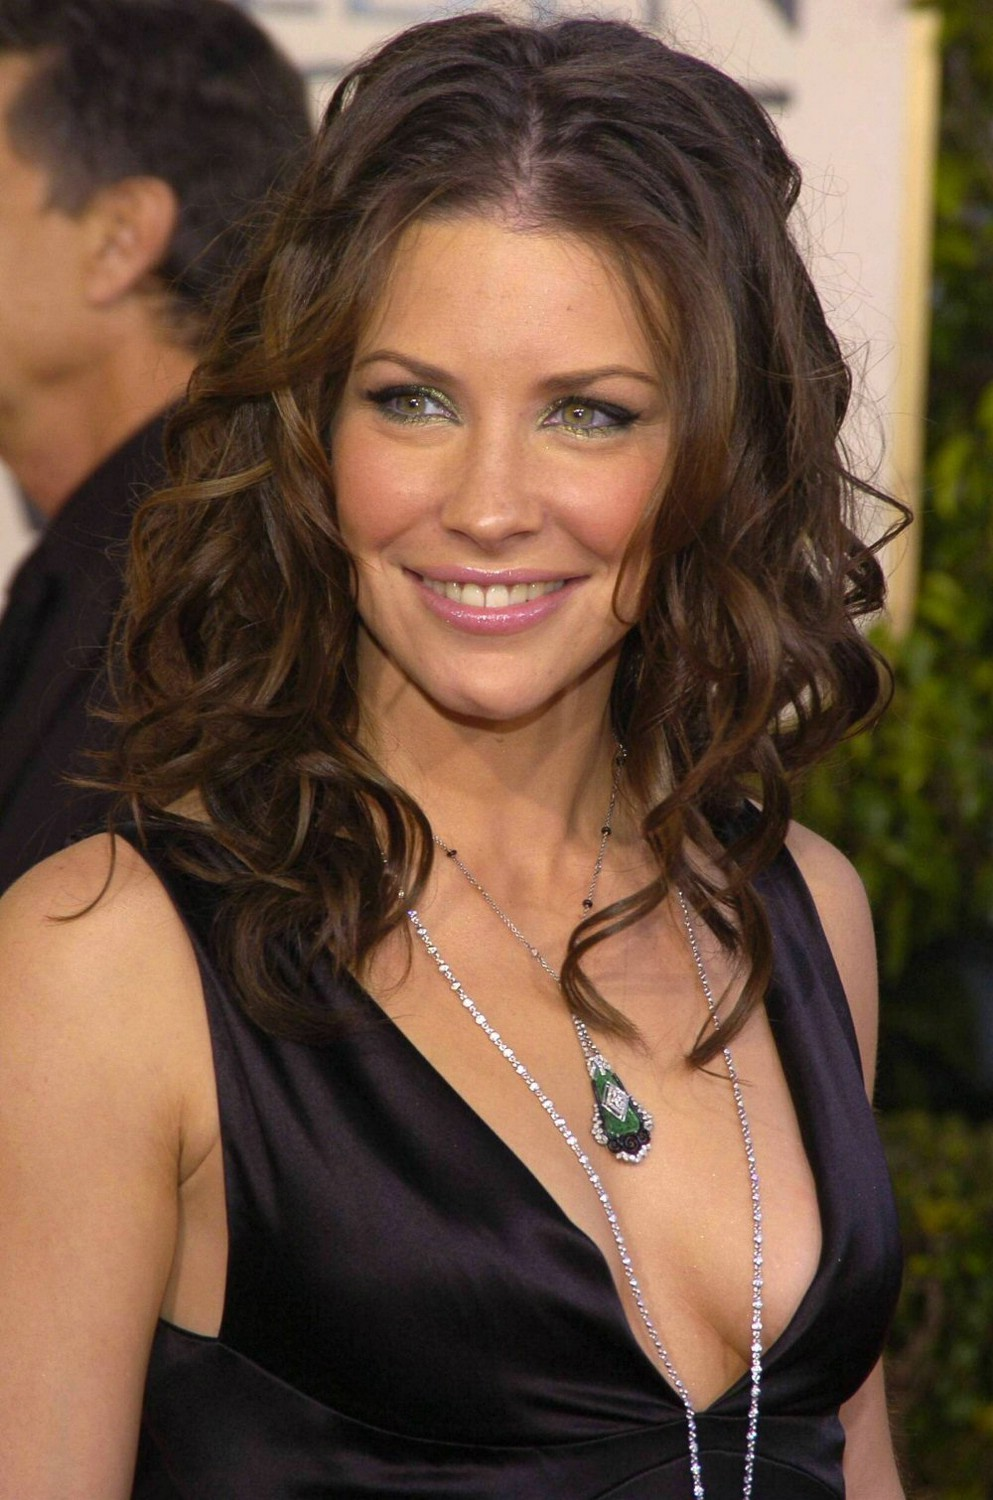 4158453 - Evangeline matthew fox and evangeline lilly 4158453 993 1500 - Evangeline Lilly